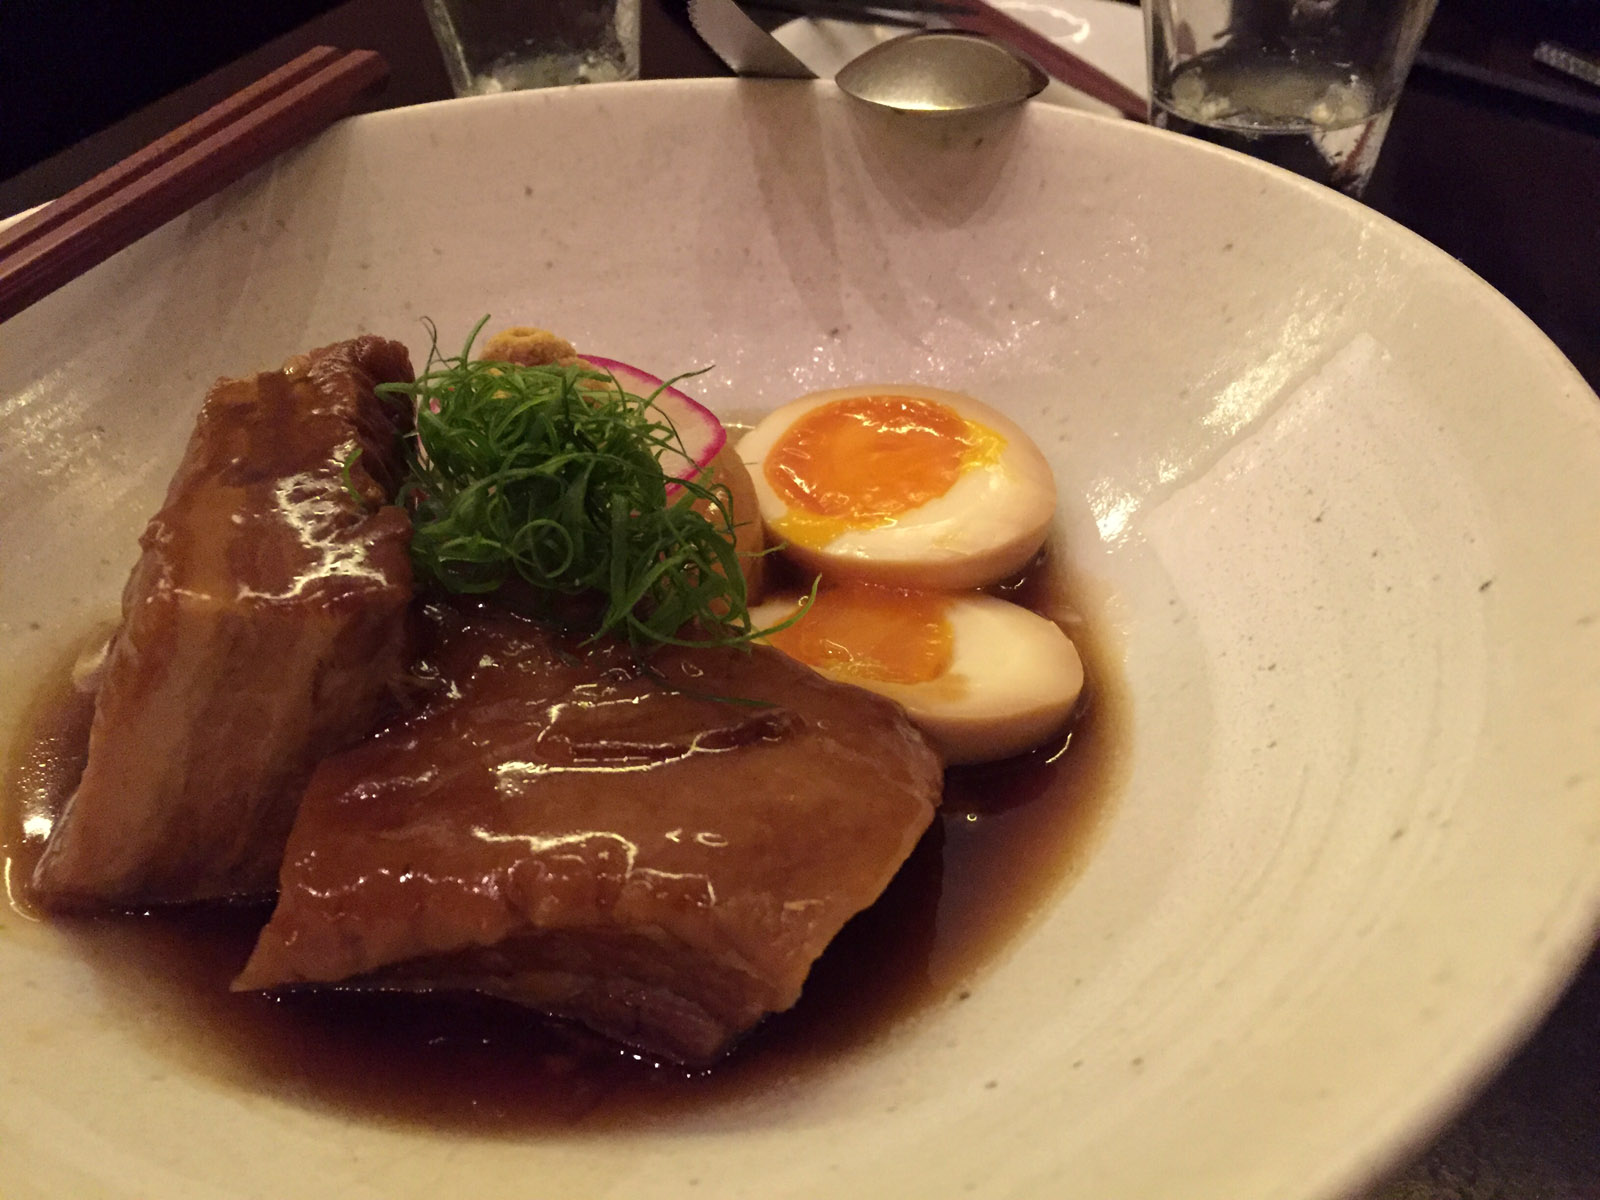 Niman Ranch Pork Belly Kakuni, Half-boiled Free-range Egg & Daikon. If there is an unwritten rule of Dinner Club it has to be that when pork belly is on a menu, we have to order it. Kinjiro's interpretation was tender as hell, not too porky, and with that little bit of runny egg to compliment the meat. I'm pretty sure this was where Mark reiterated his comment about how there's no such thing as double dipping. I'm pretty sure he said that as he was lifting a spoonful of pork belly broth for me to taste after he had tasted it. Did I mention Mark had the flu last week? And I was flu-ish all weekend long following this meal? Is anybody catching what I'm implying here? Okay...just checking.